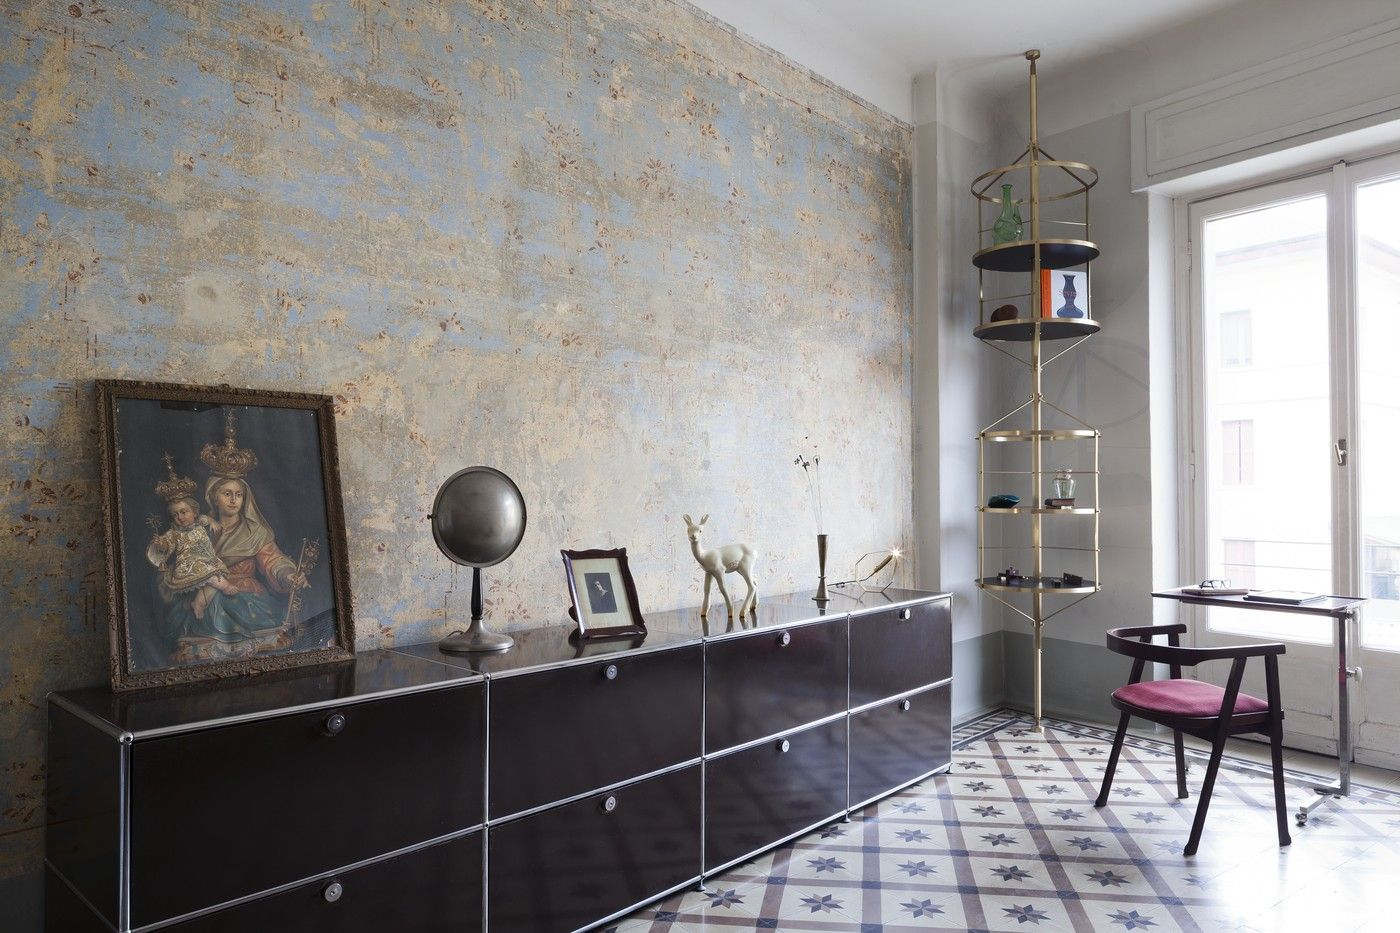 Milan Based Scenographer Pietro Russo Is An Experienced And Sensitive Designer Of Both Homes And Furniture Alike The Apartment Design Interior Interior Trend